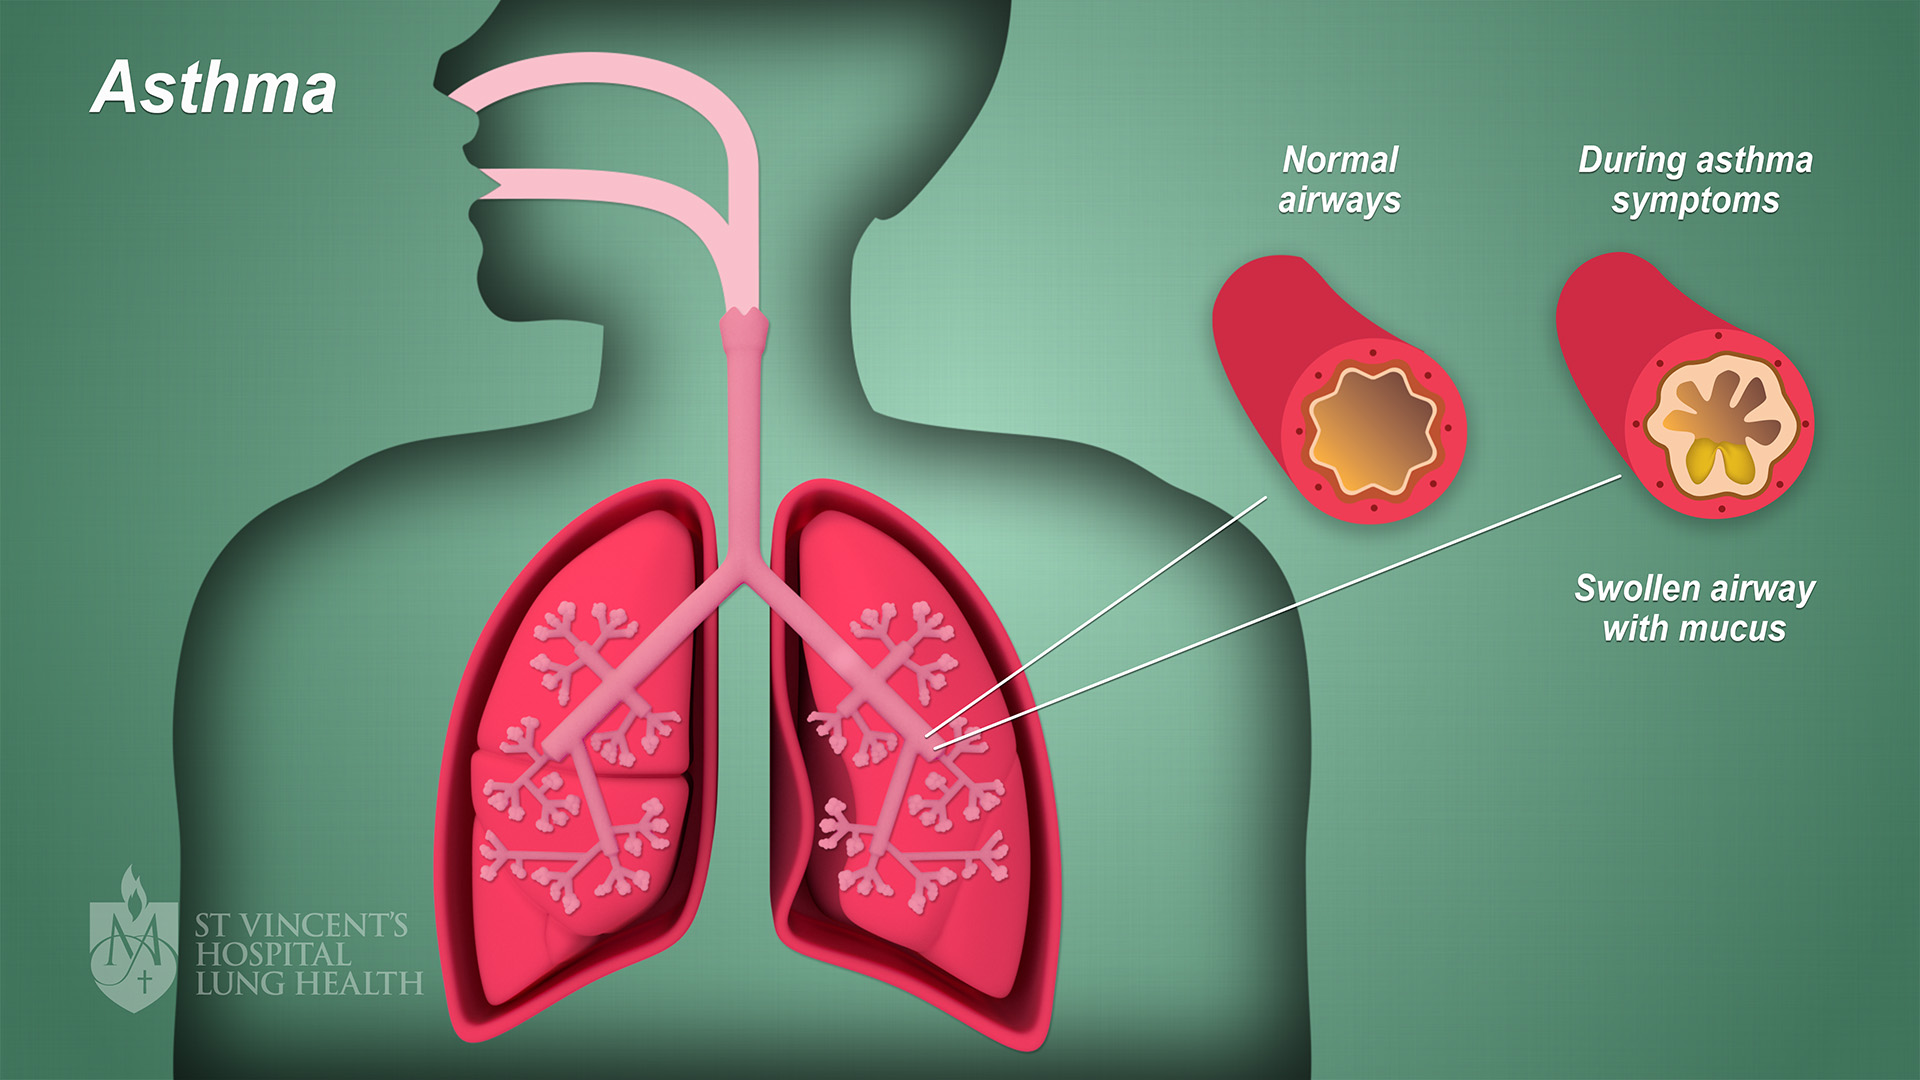 9_SVH_Lung_Health_Asthma_final_1080p